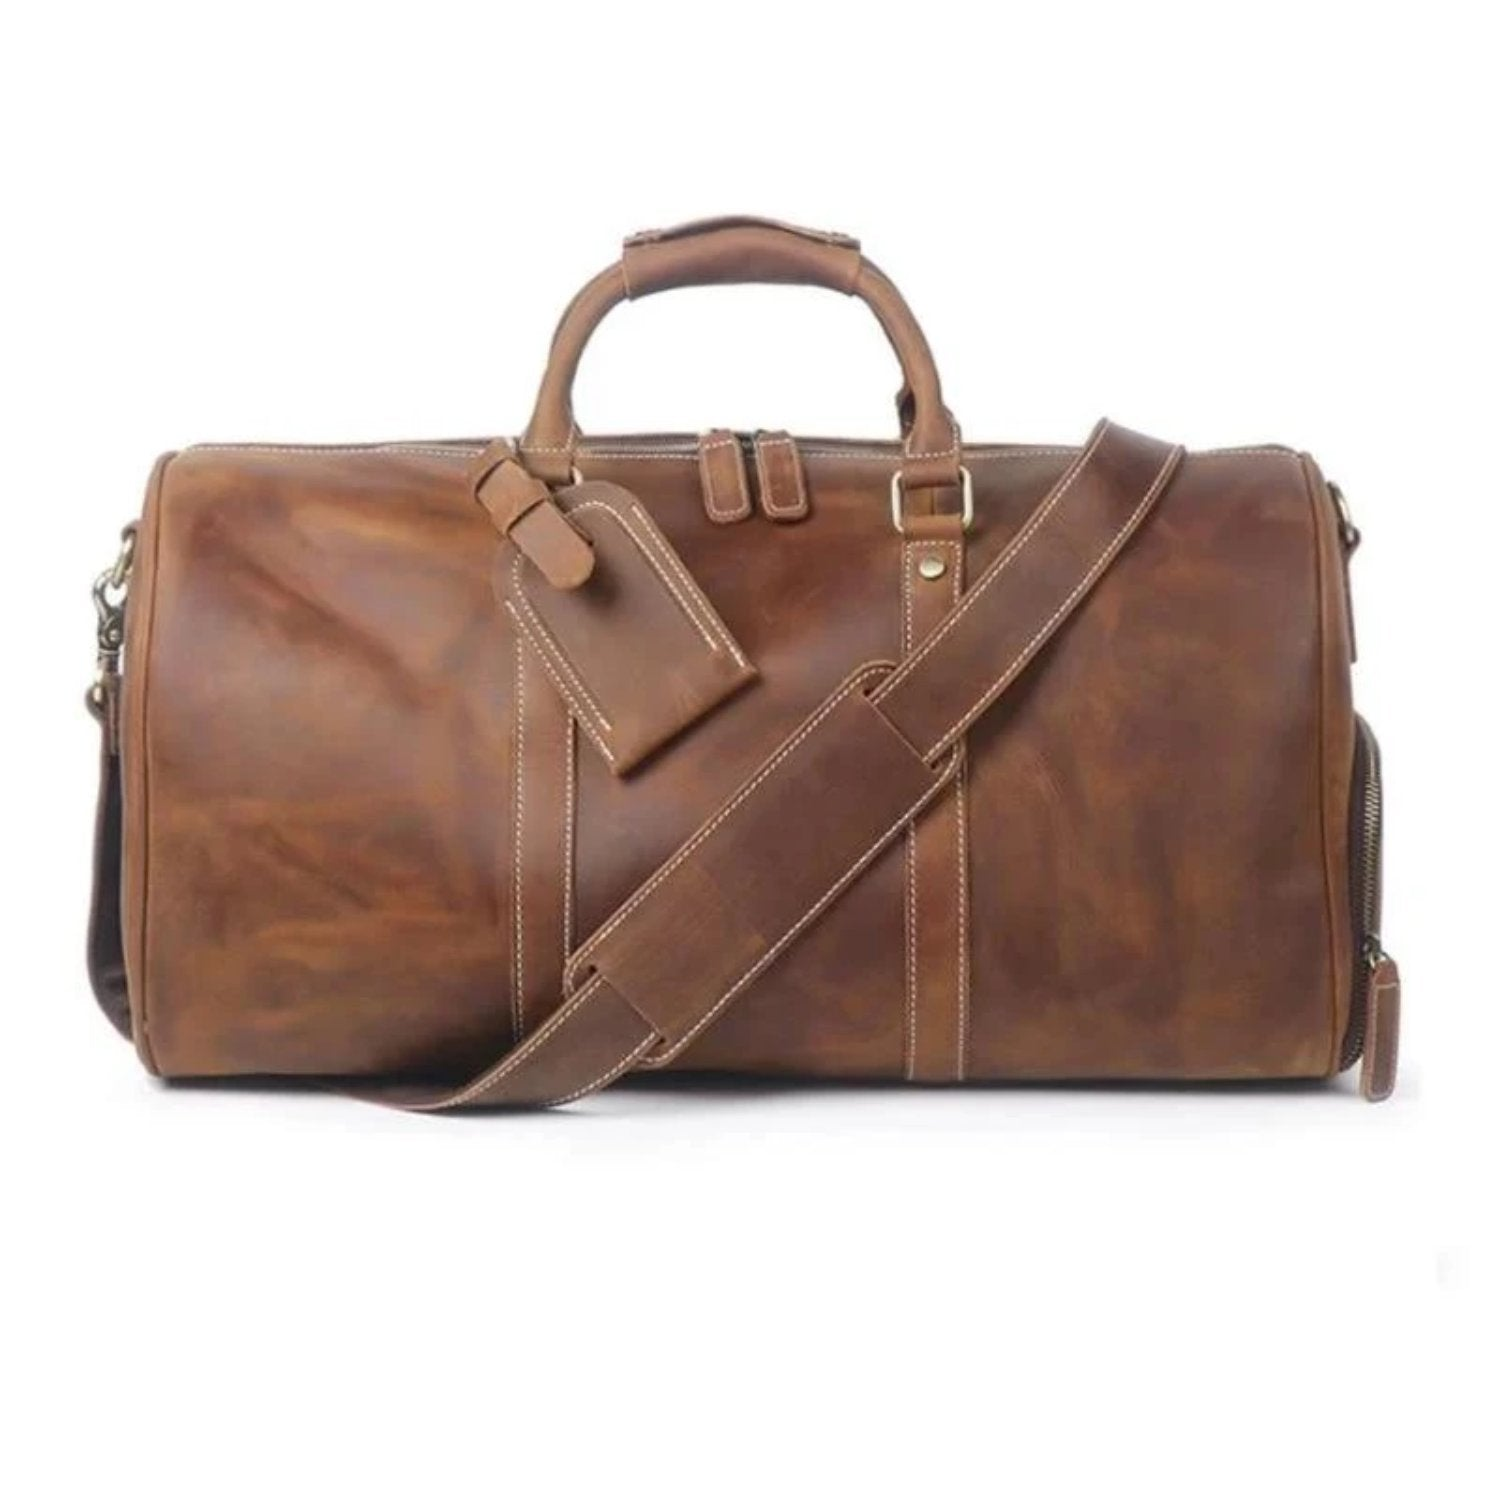 The Dagny Weekender | Large Leather Duffle Bag - STEEL HORSE LEATHER, Handmade, Genuine Vintage Leather